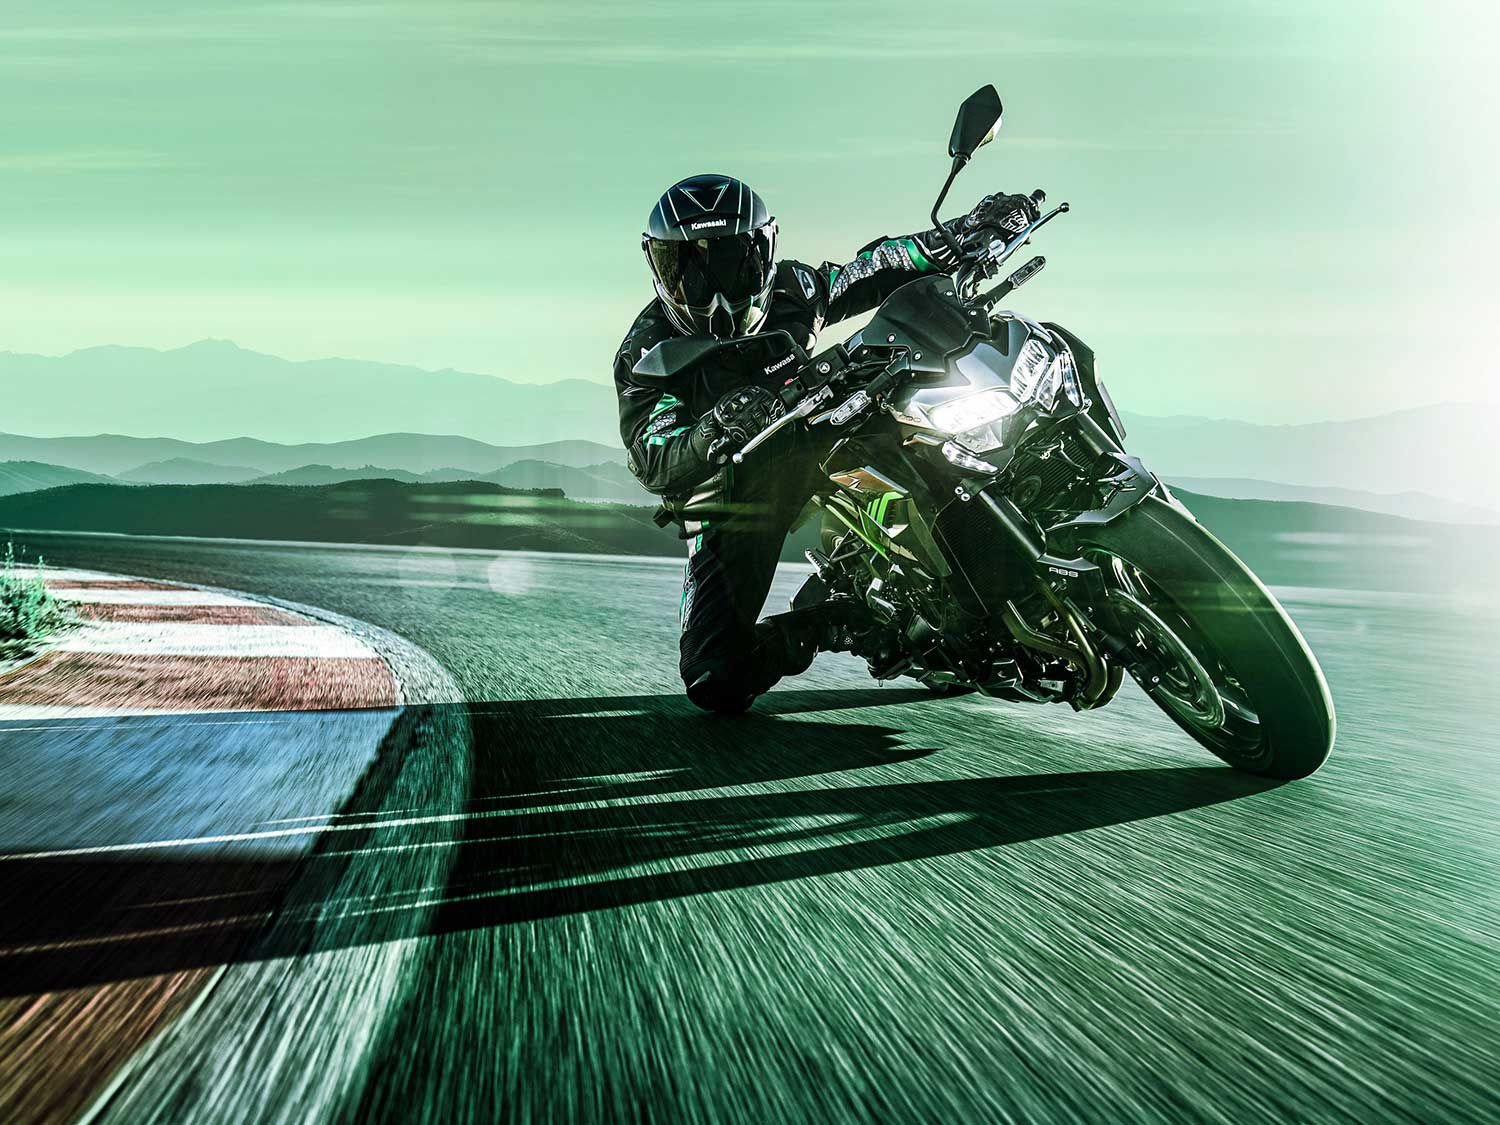 <h2>2020 Kawasaki Z900</h2> </br> The 2020 Kawasaki Z900 is available in Metallic Graphite Gray/Metallic Spark Black for $8,999 or Candy Plasma Blue/Metallic Matte Fusion Silver for $9,299.